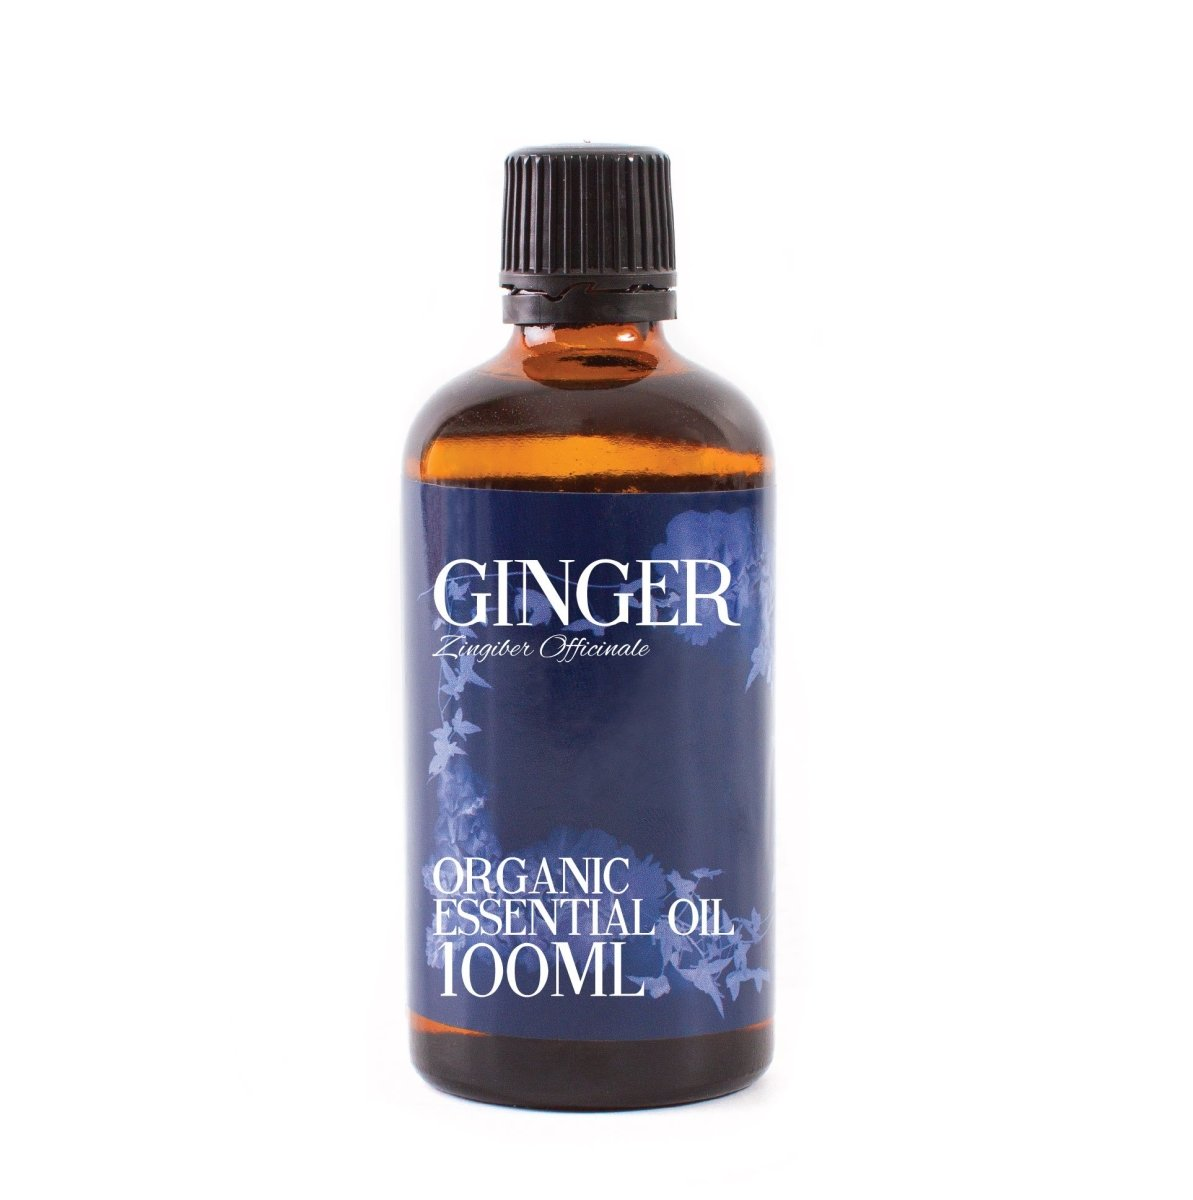 Ginger Organic Essential Oil - Mystic Moments UK